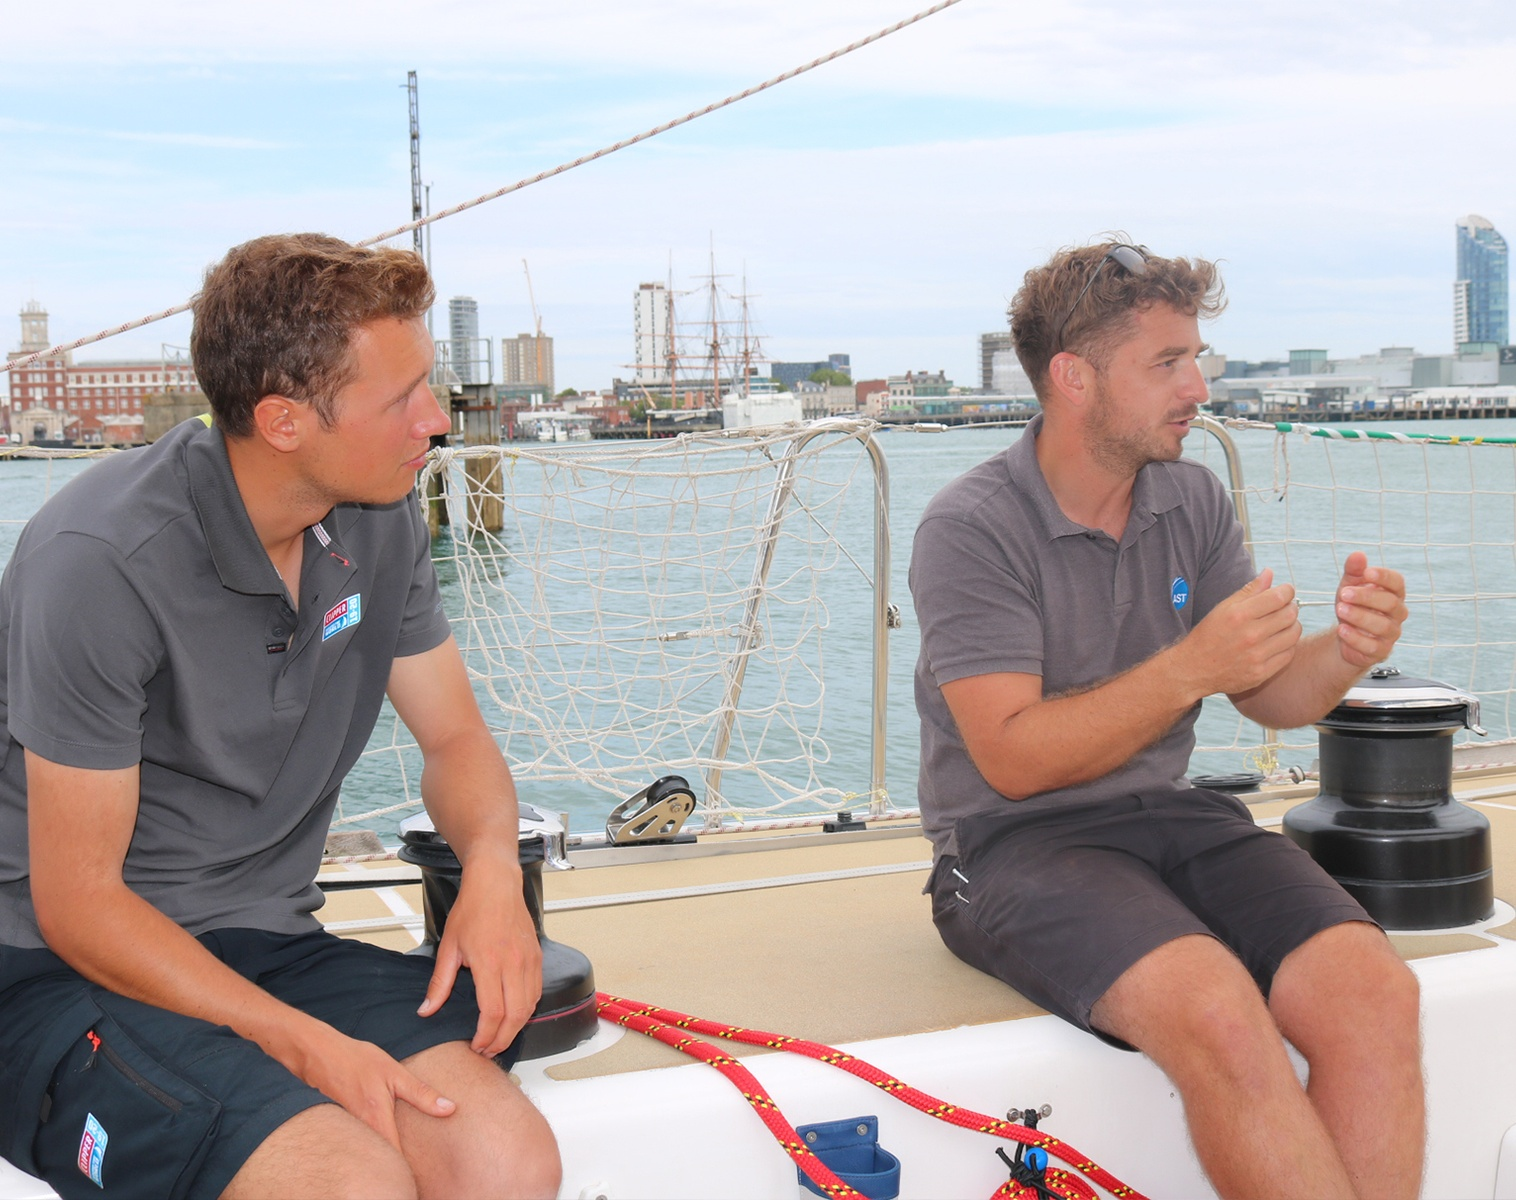 AST prepares Clipper Round the World Yacht Race Skippers to set sail